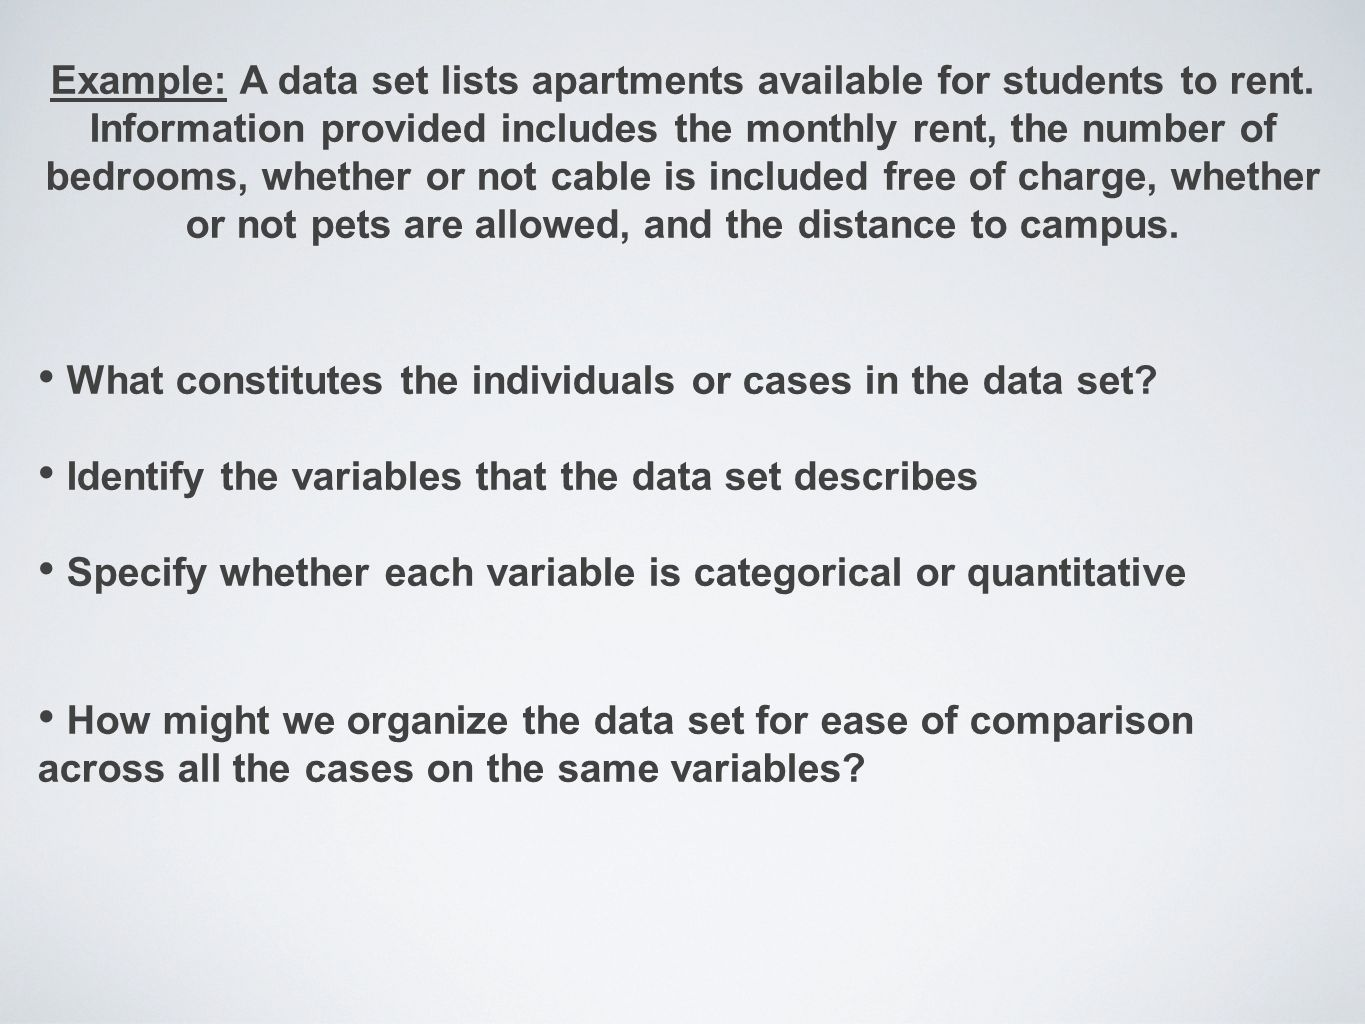 Example: A data set lists apartments available for students to rent.